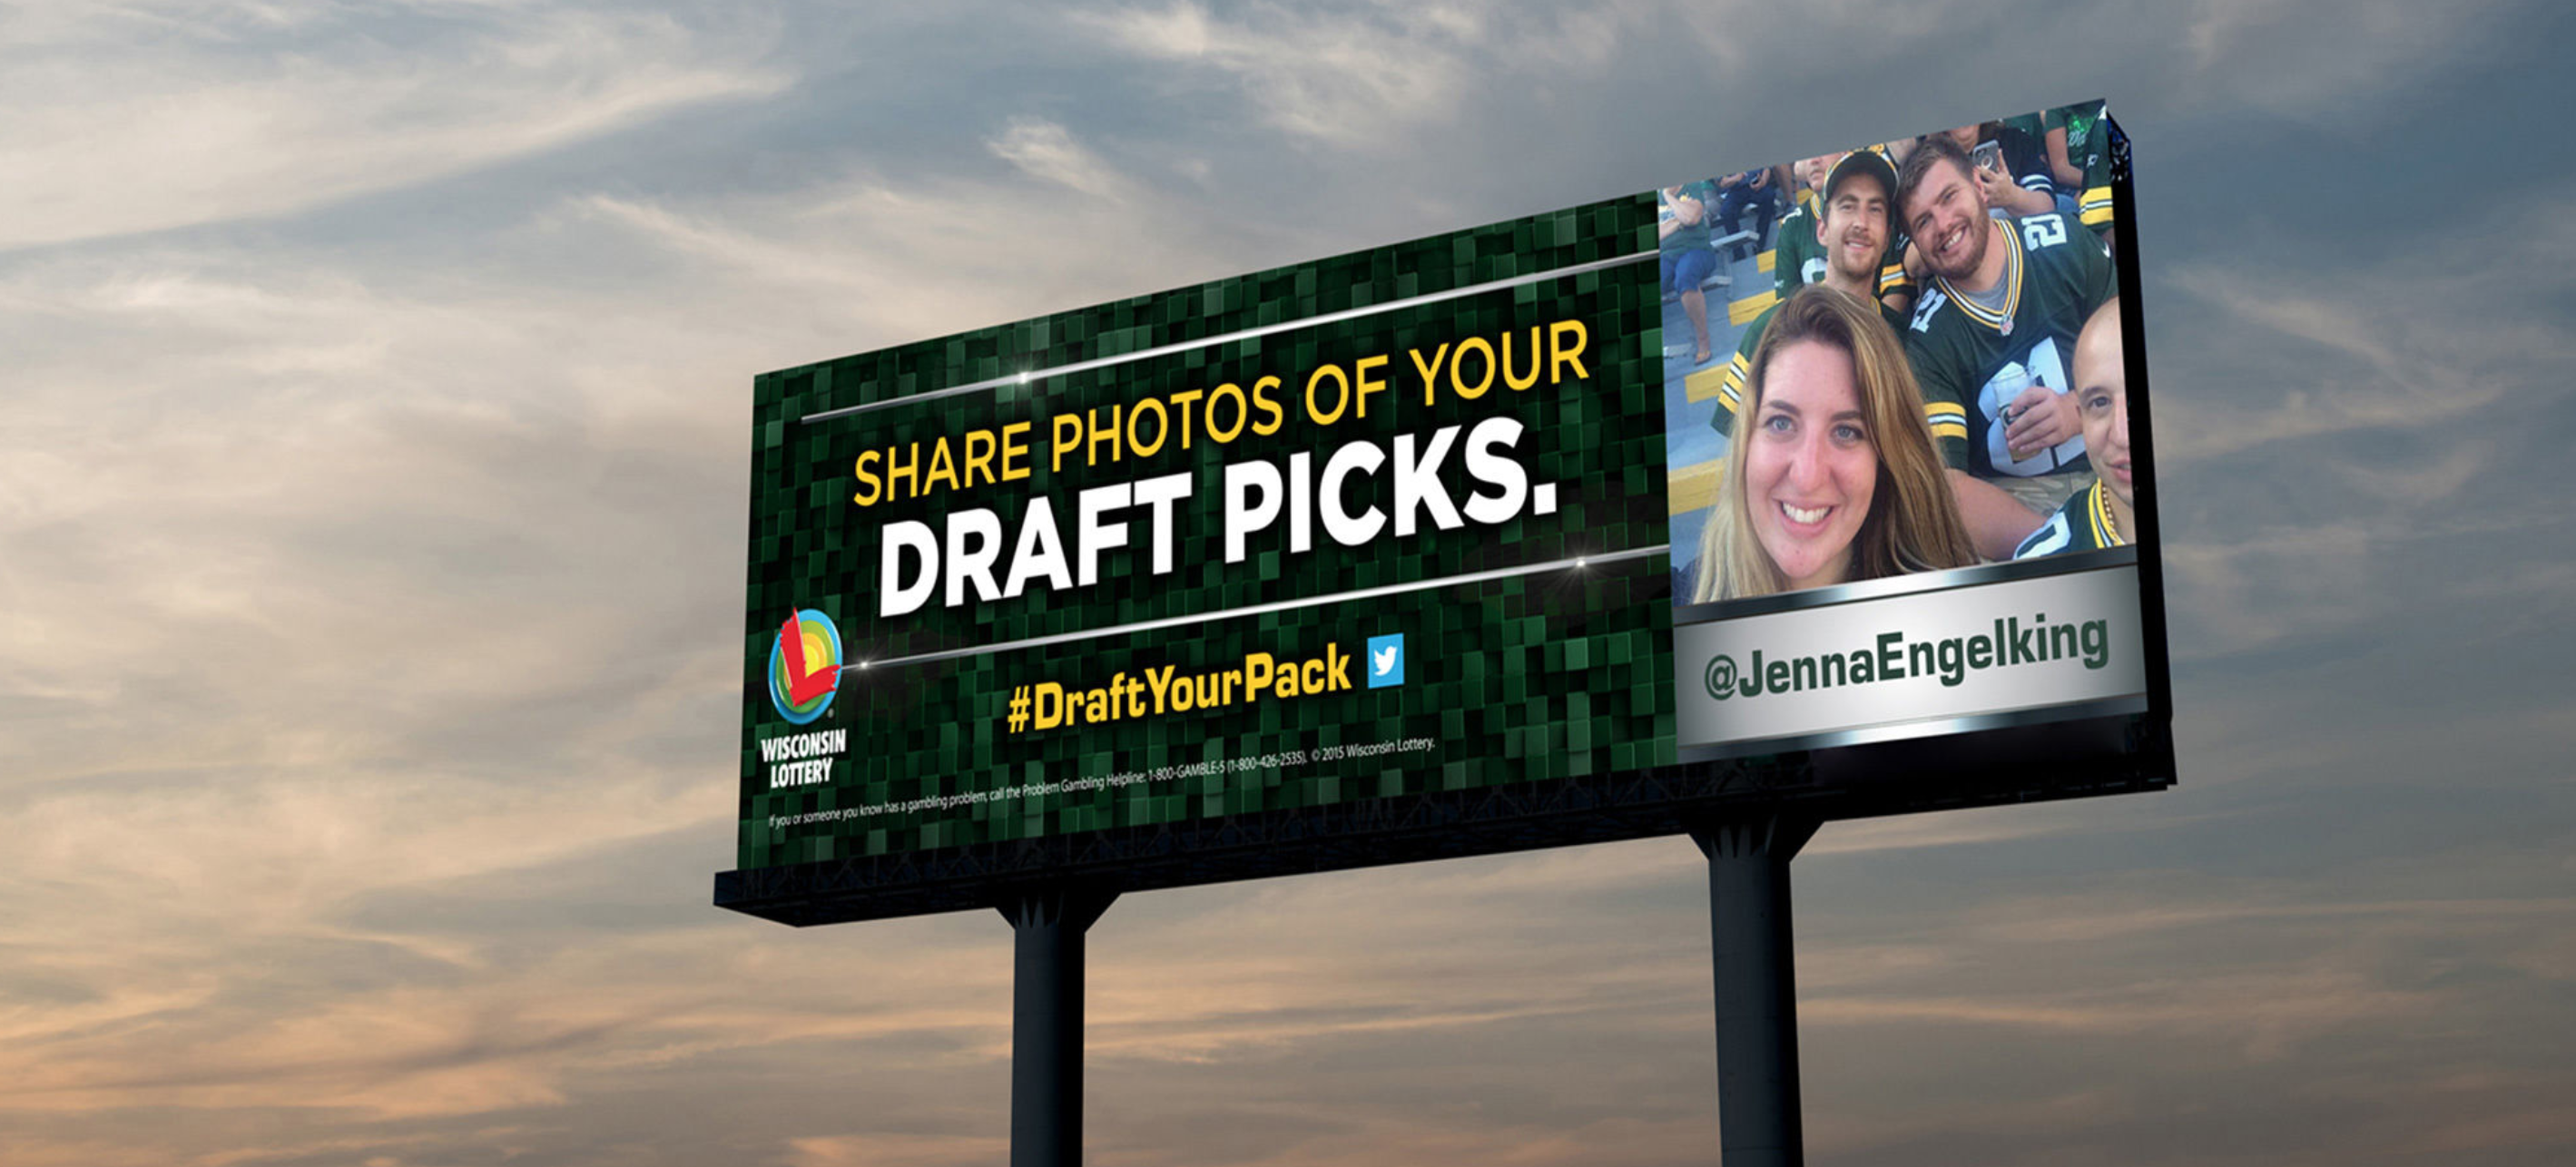 "A billboard featuring a group of friends at a Green Bay Packer's game and text that says ""Share photos of your draft picks"""